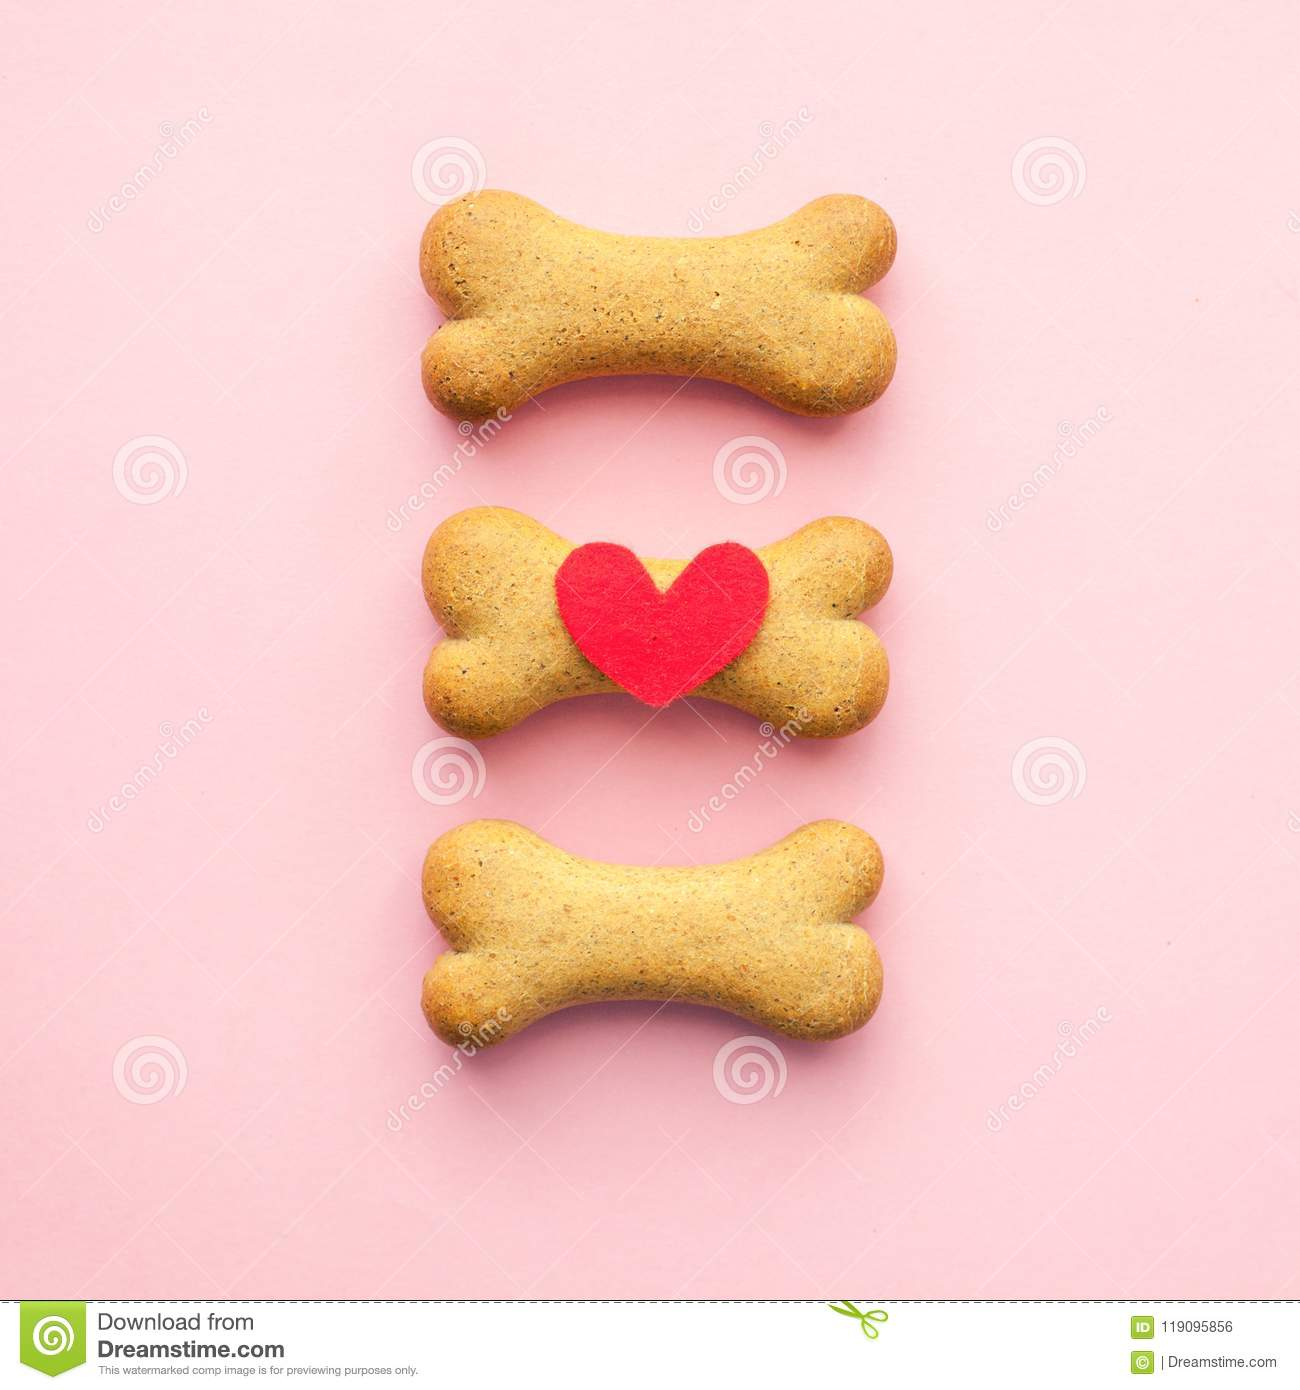 Set of bone-shaped biscuits for dog on pink background, concept pet care.